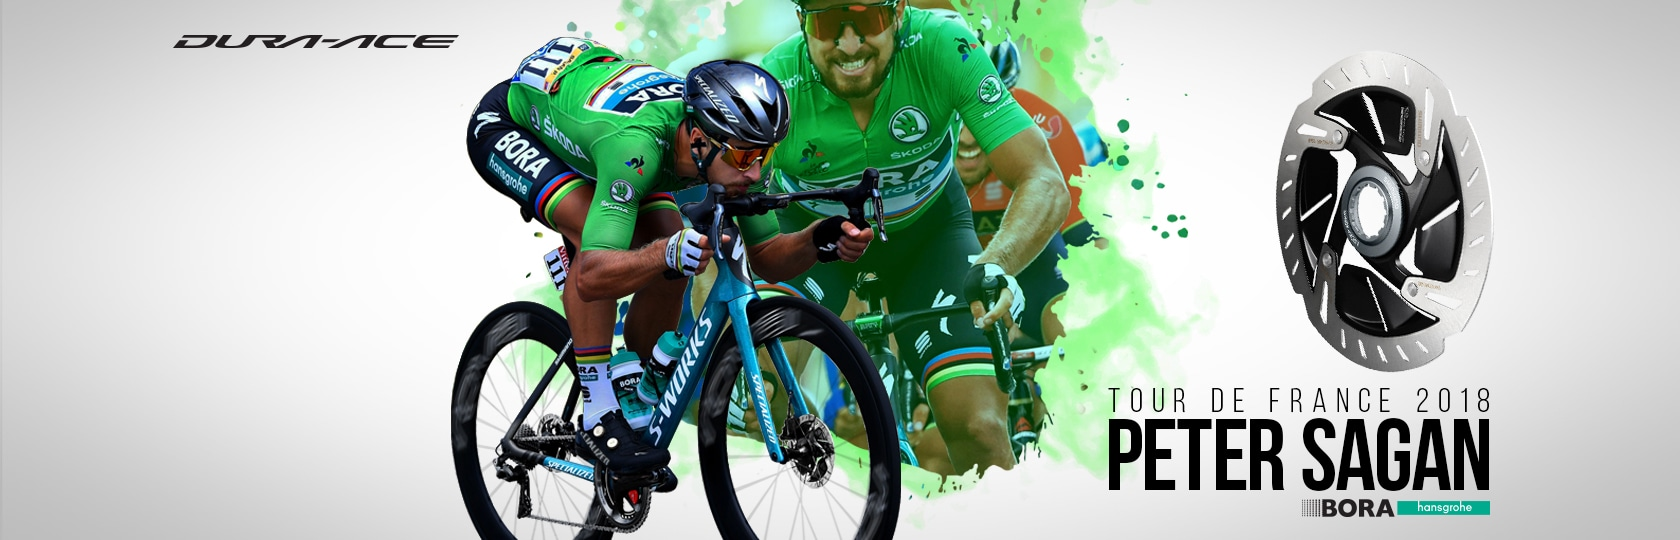 bike_Shimano_header_Sagan_v3